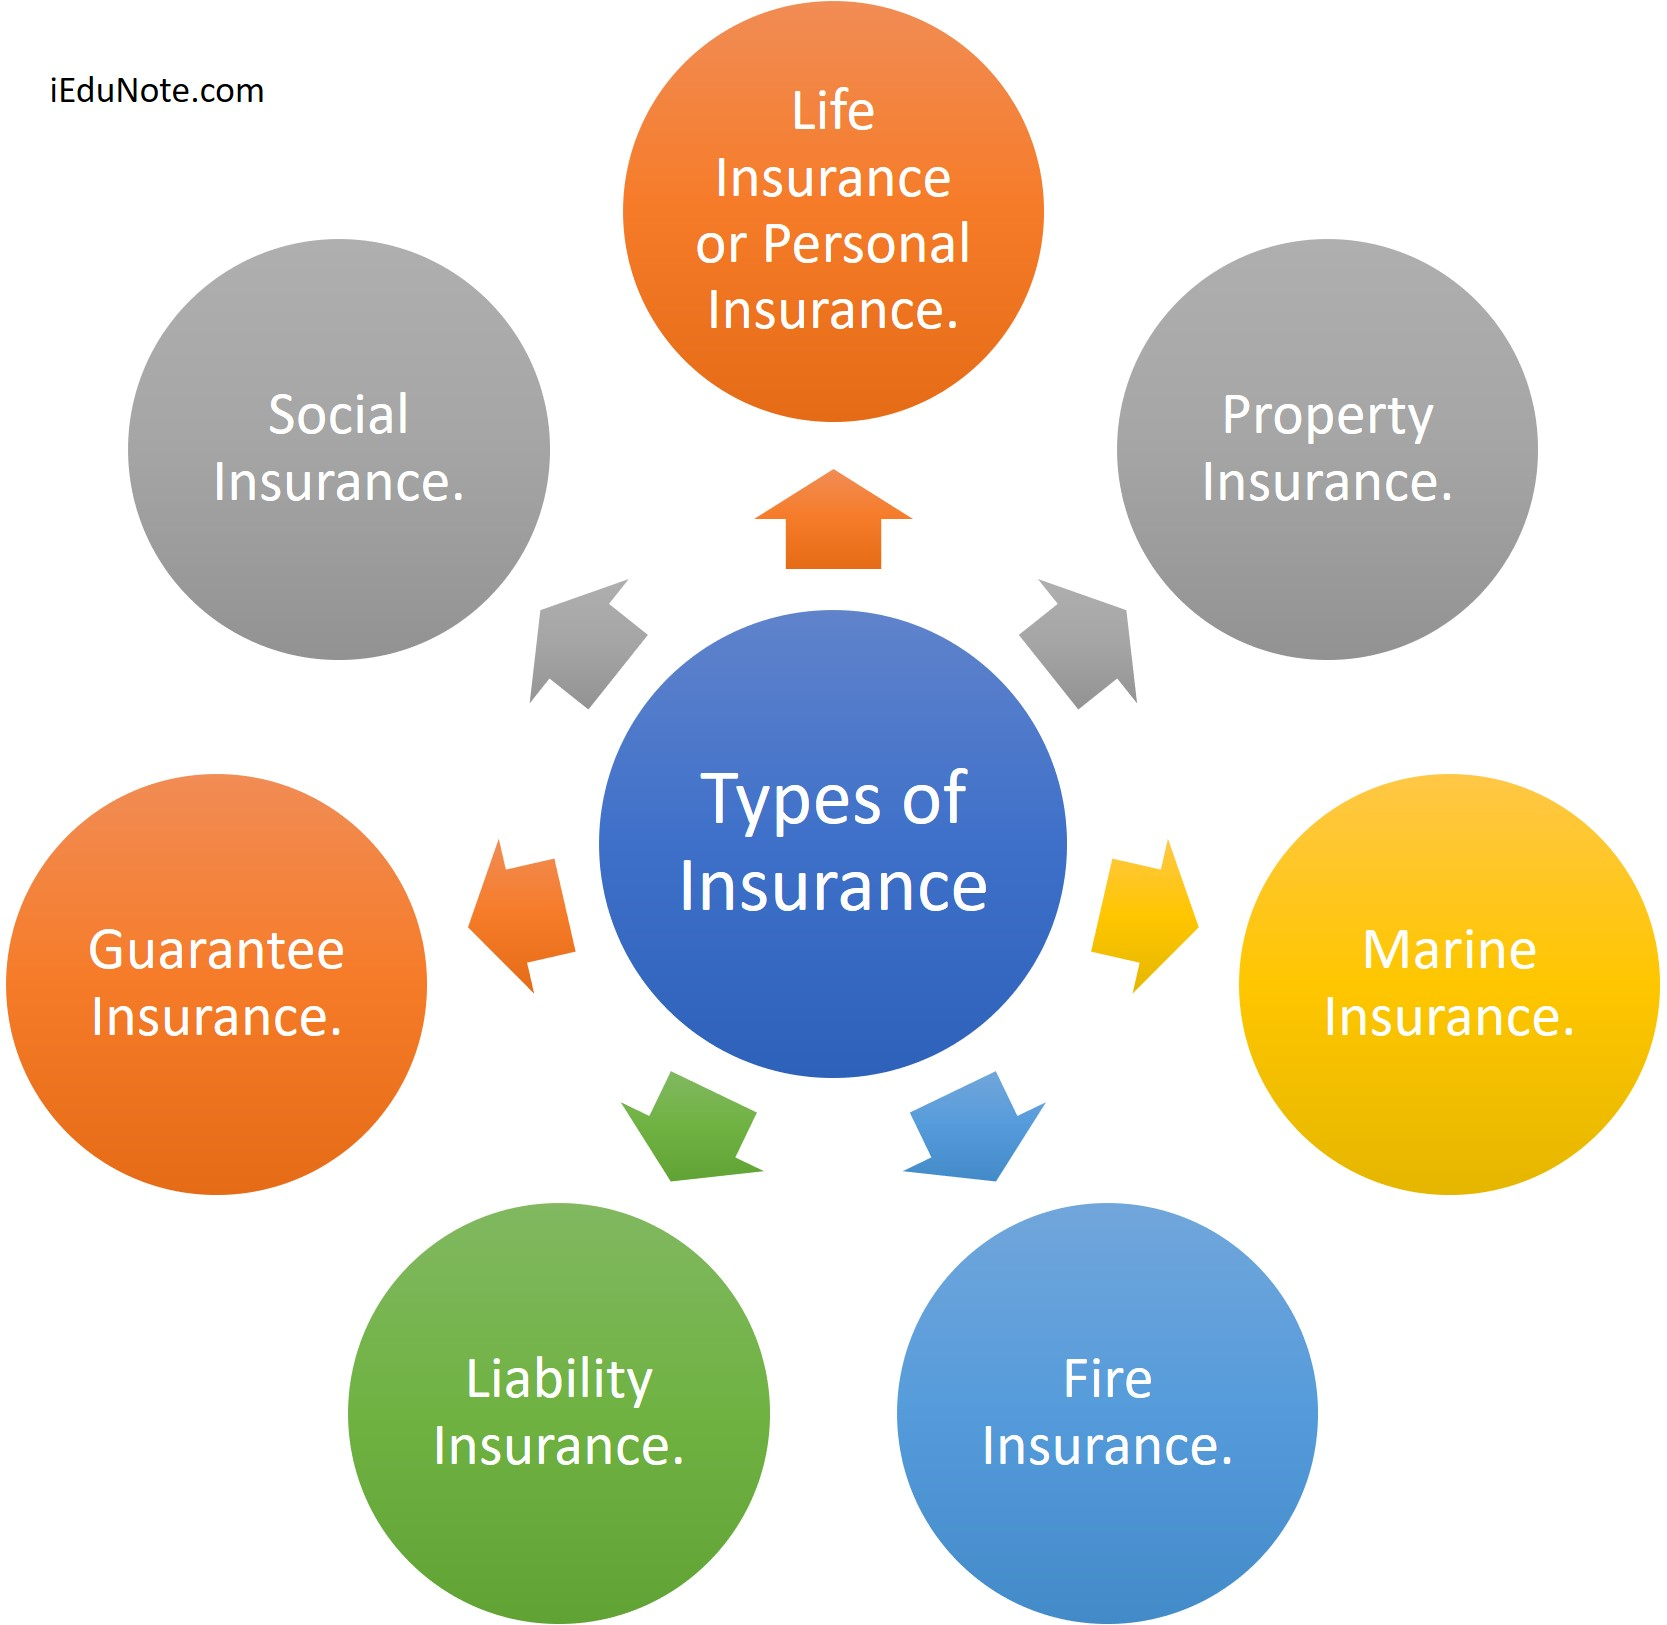 7 Types of Insurance are; Life Insurance orPersonal Insurance, Property Insurance, Marine Insurance, Fire Insurance, Liability Insurance, Guarantee Insurance.